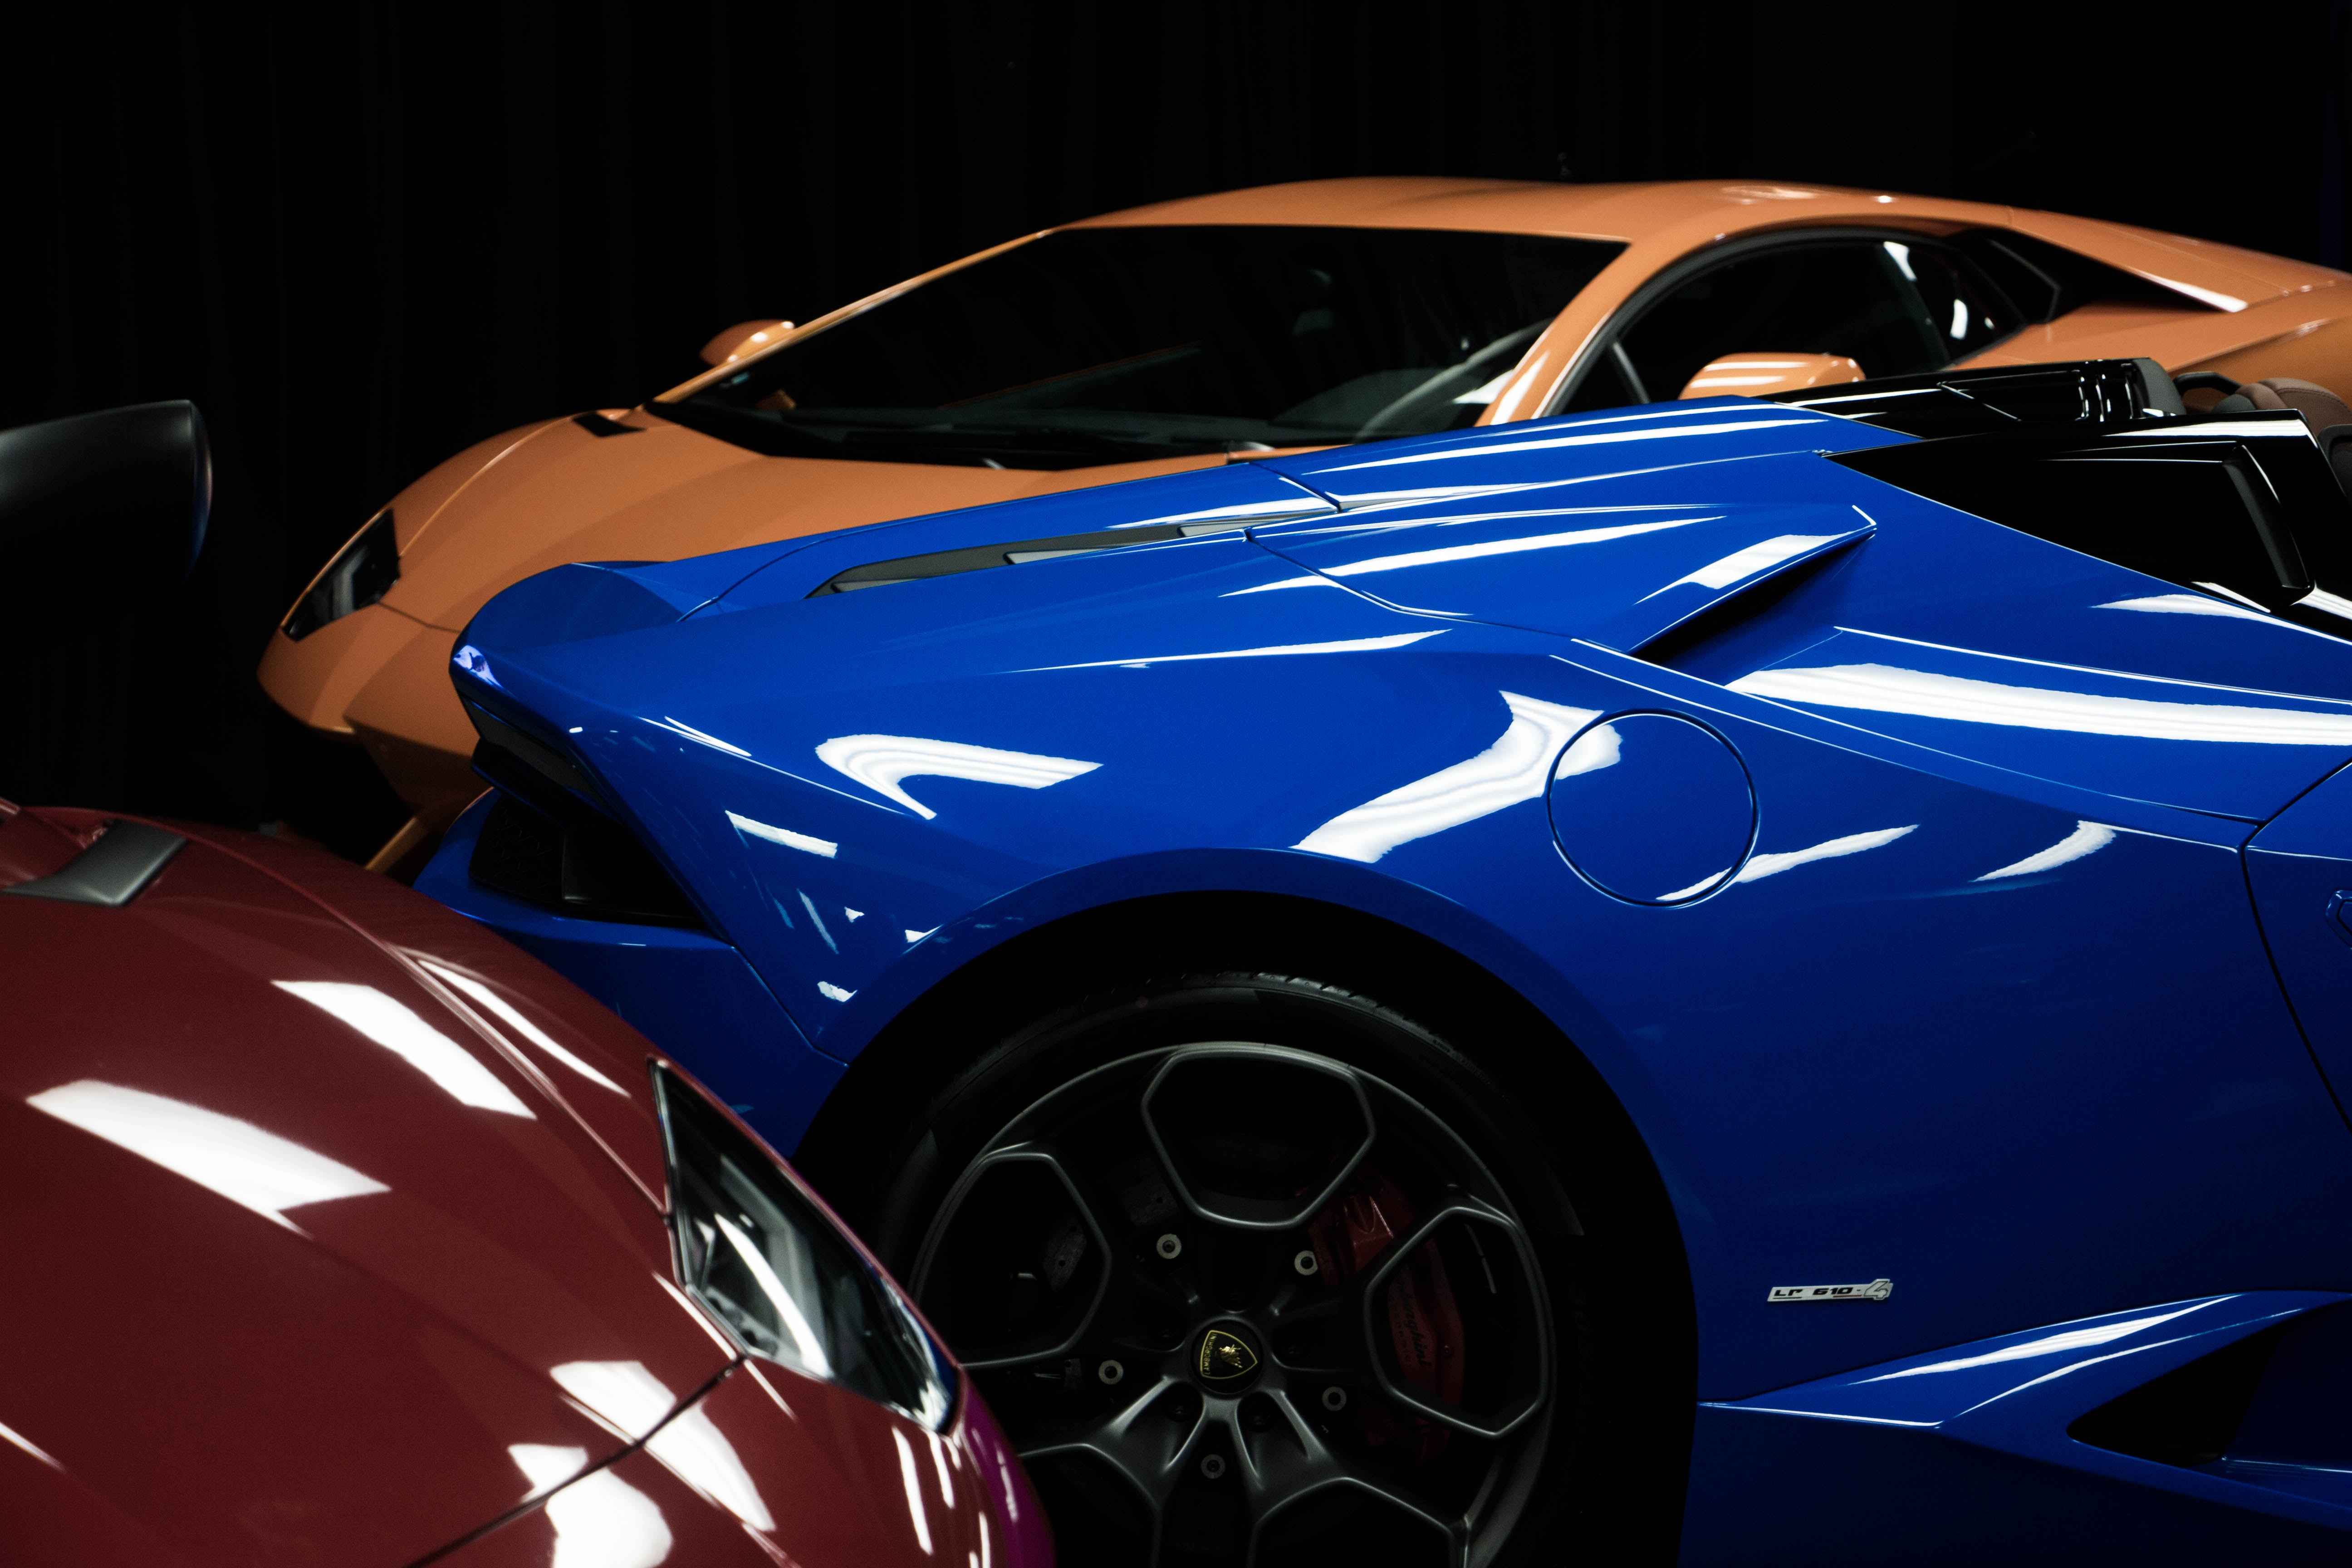 Red, orange and blue race cars.